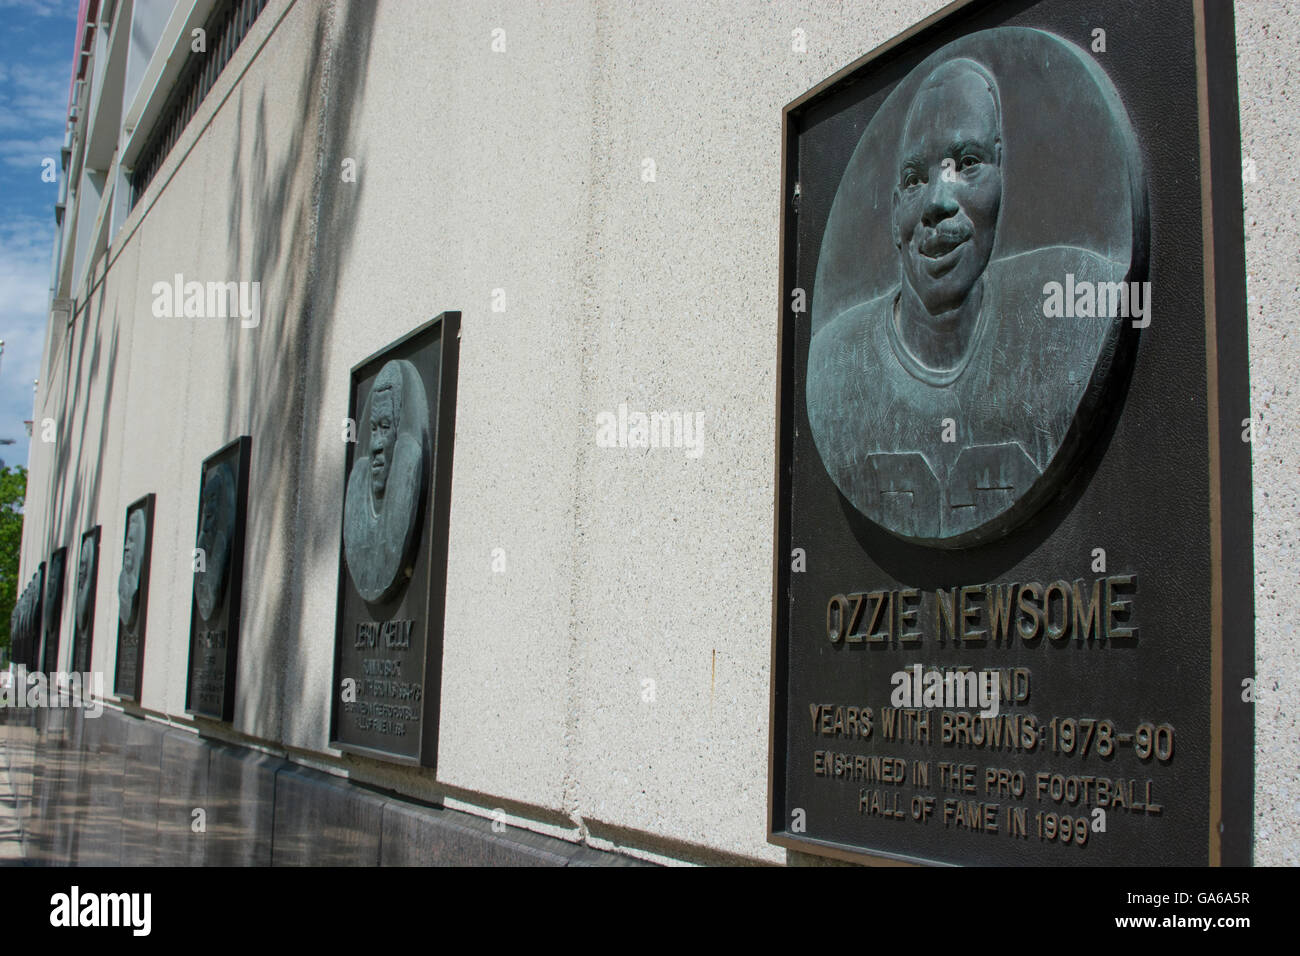 Ohio, Cleveland. Cleveland Browns Stadium aka First Energy Stadium. Monument wall with famous Cleveland team members. - Stock Image